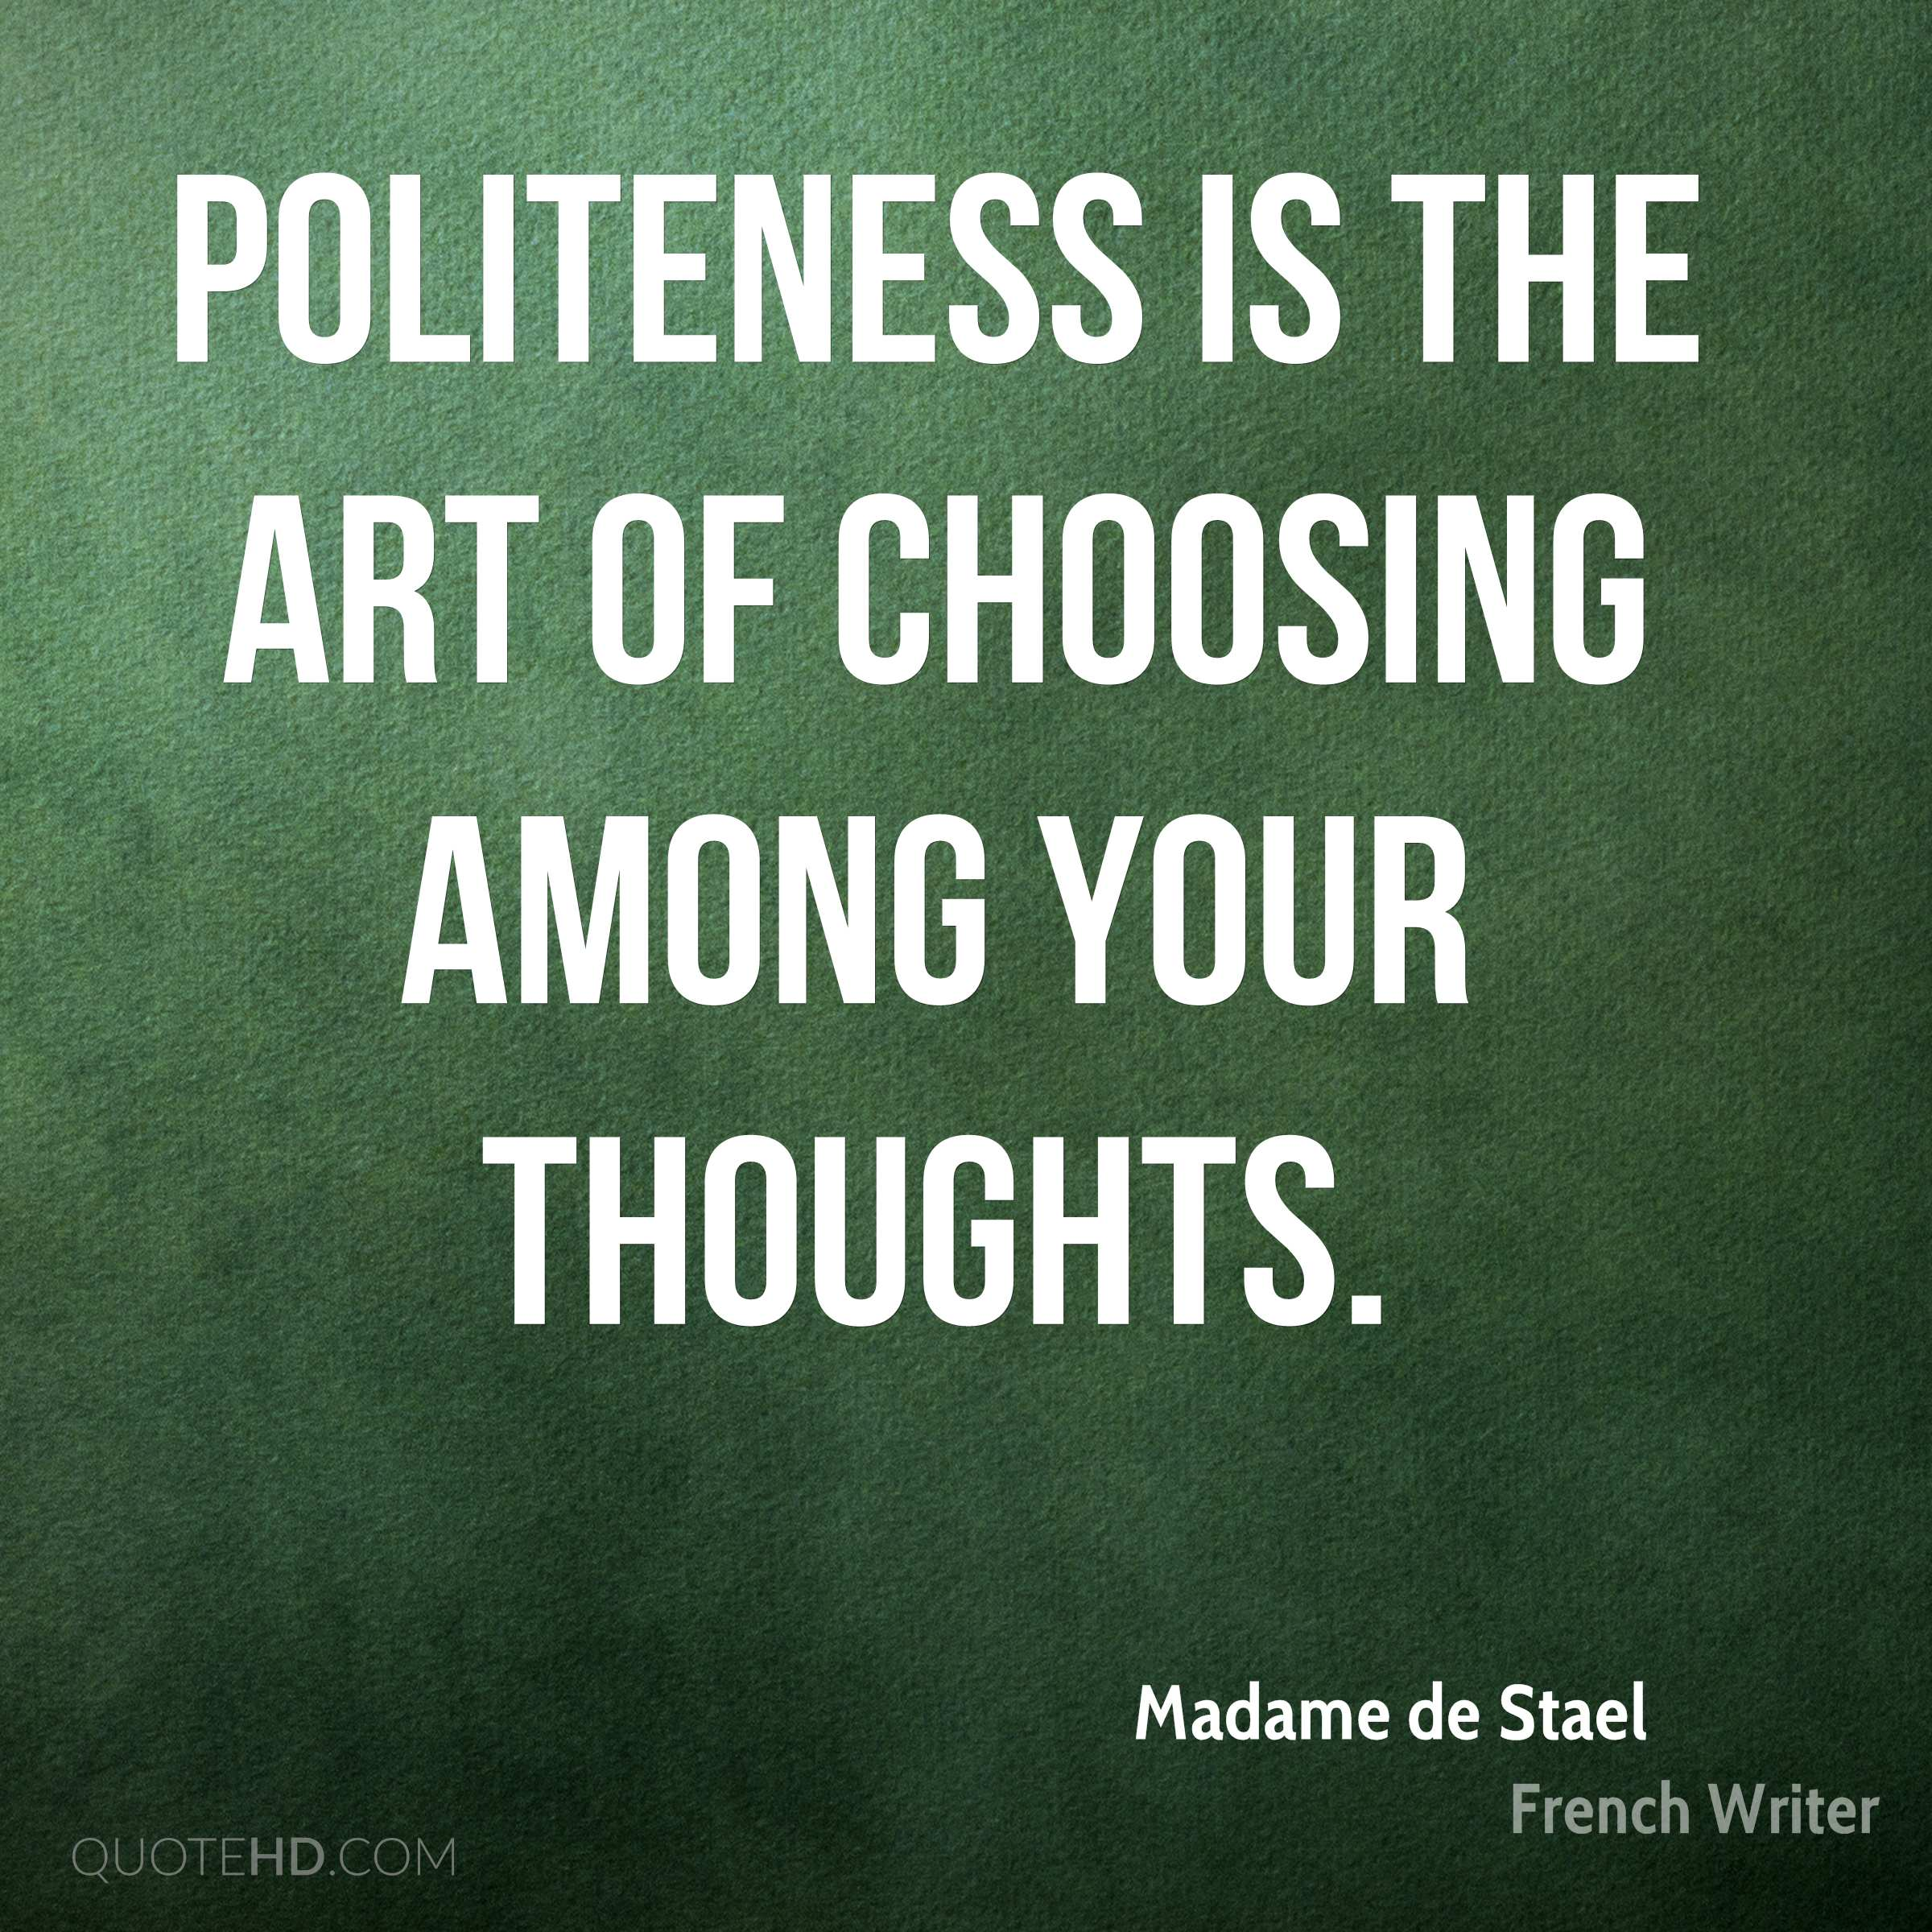 Politeness is the art of choosing among your thoughts.